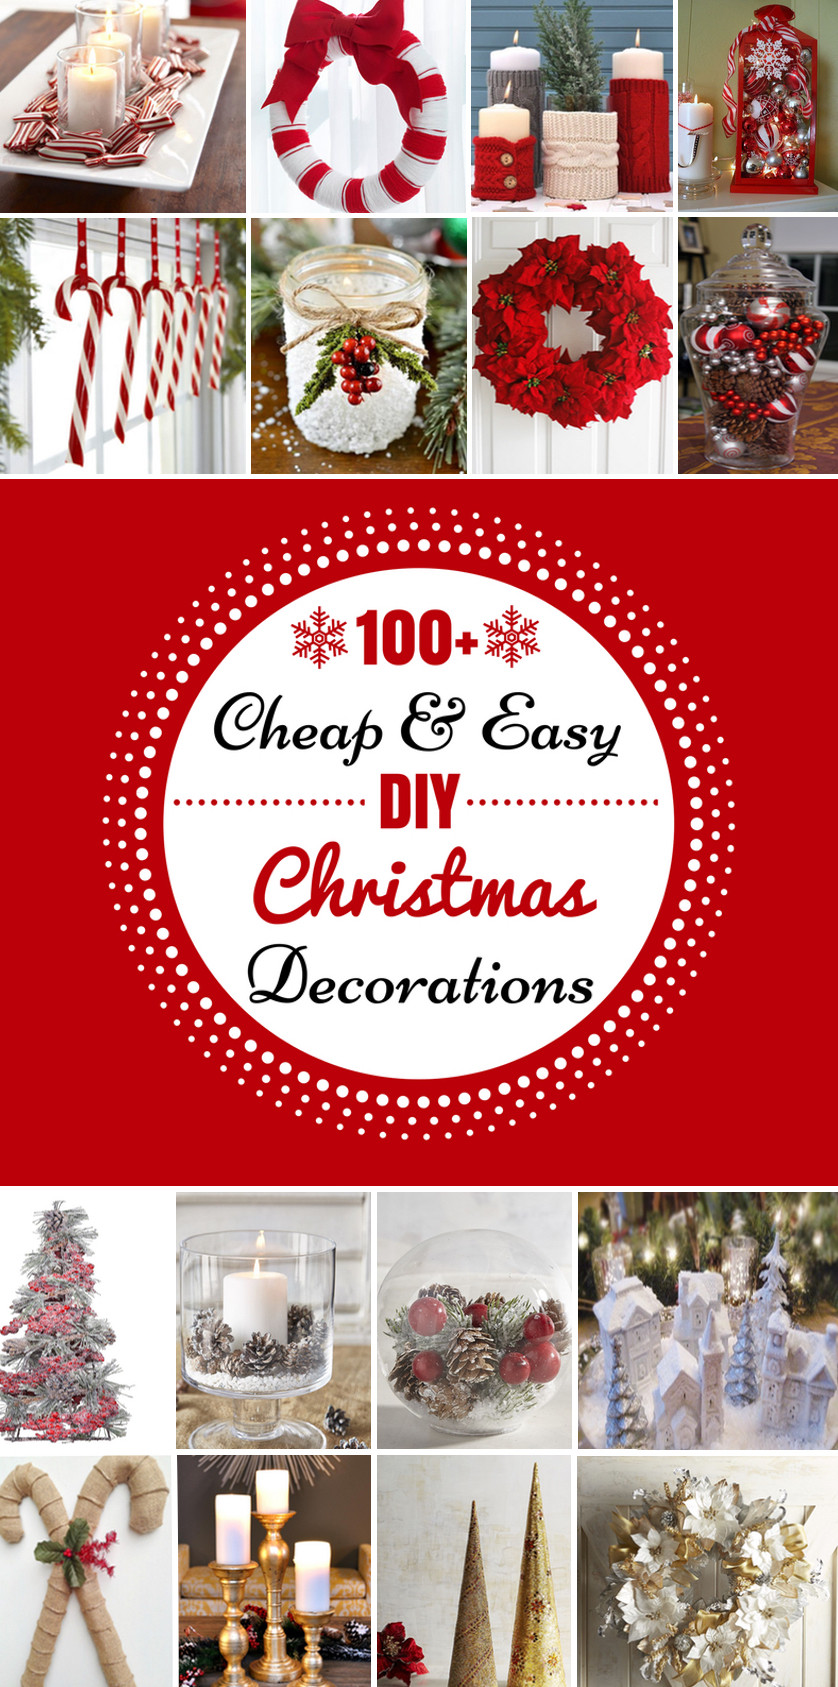 Best ideas about Christmas DIY Decoration Ideas . Save or Pin 100 Cheap & Easy DIY Christmas Decorations Prudent Penny Now.